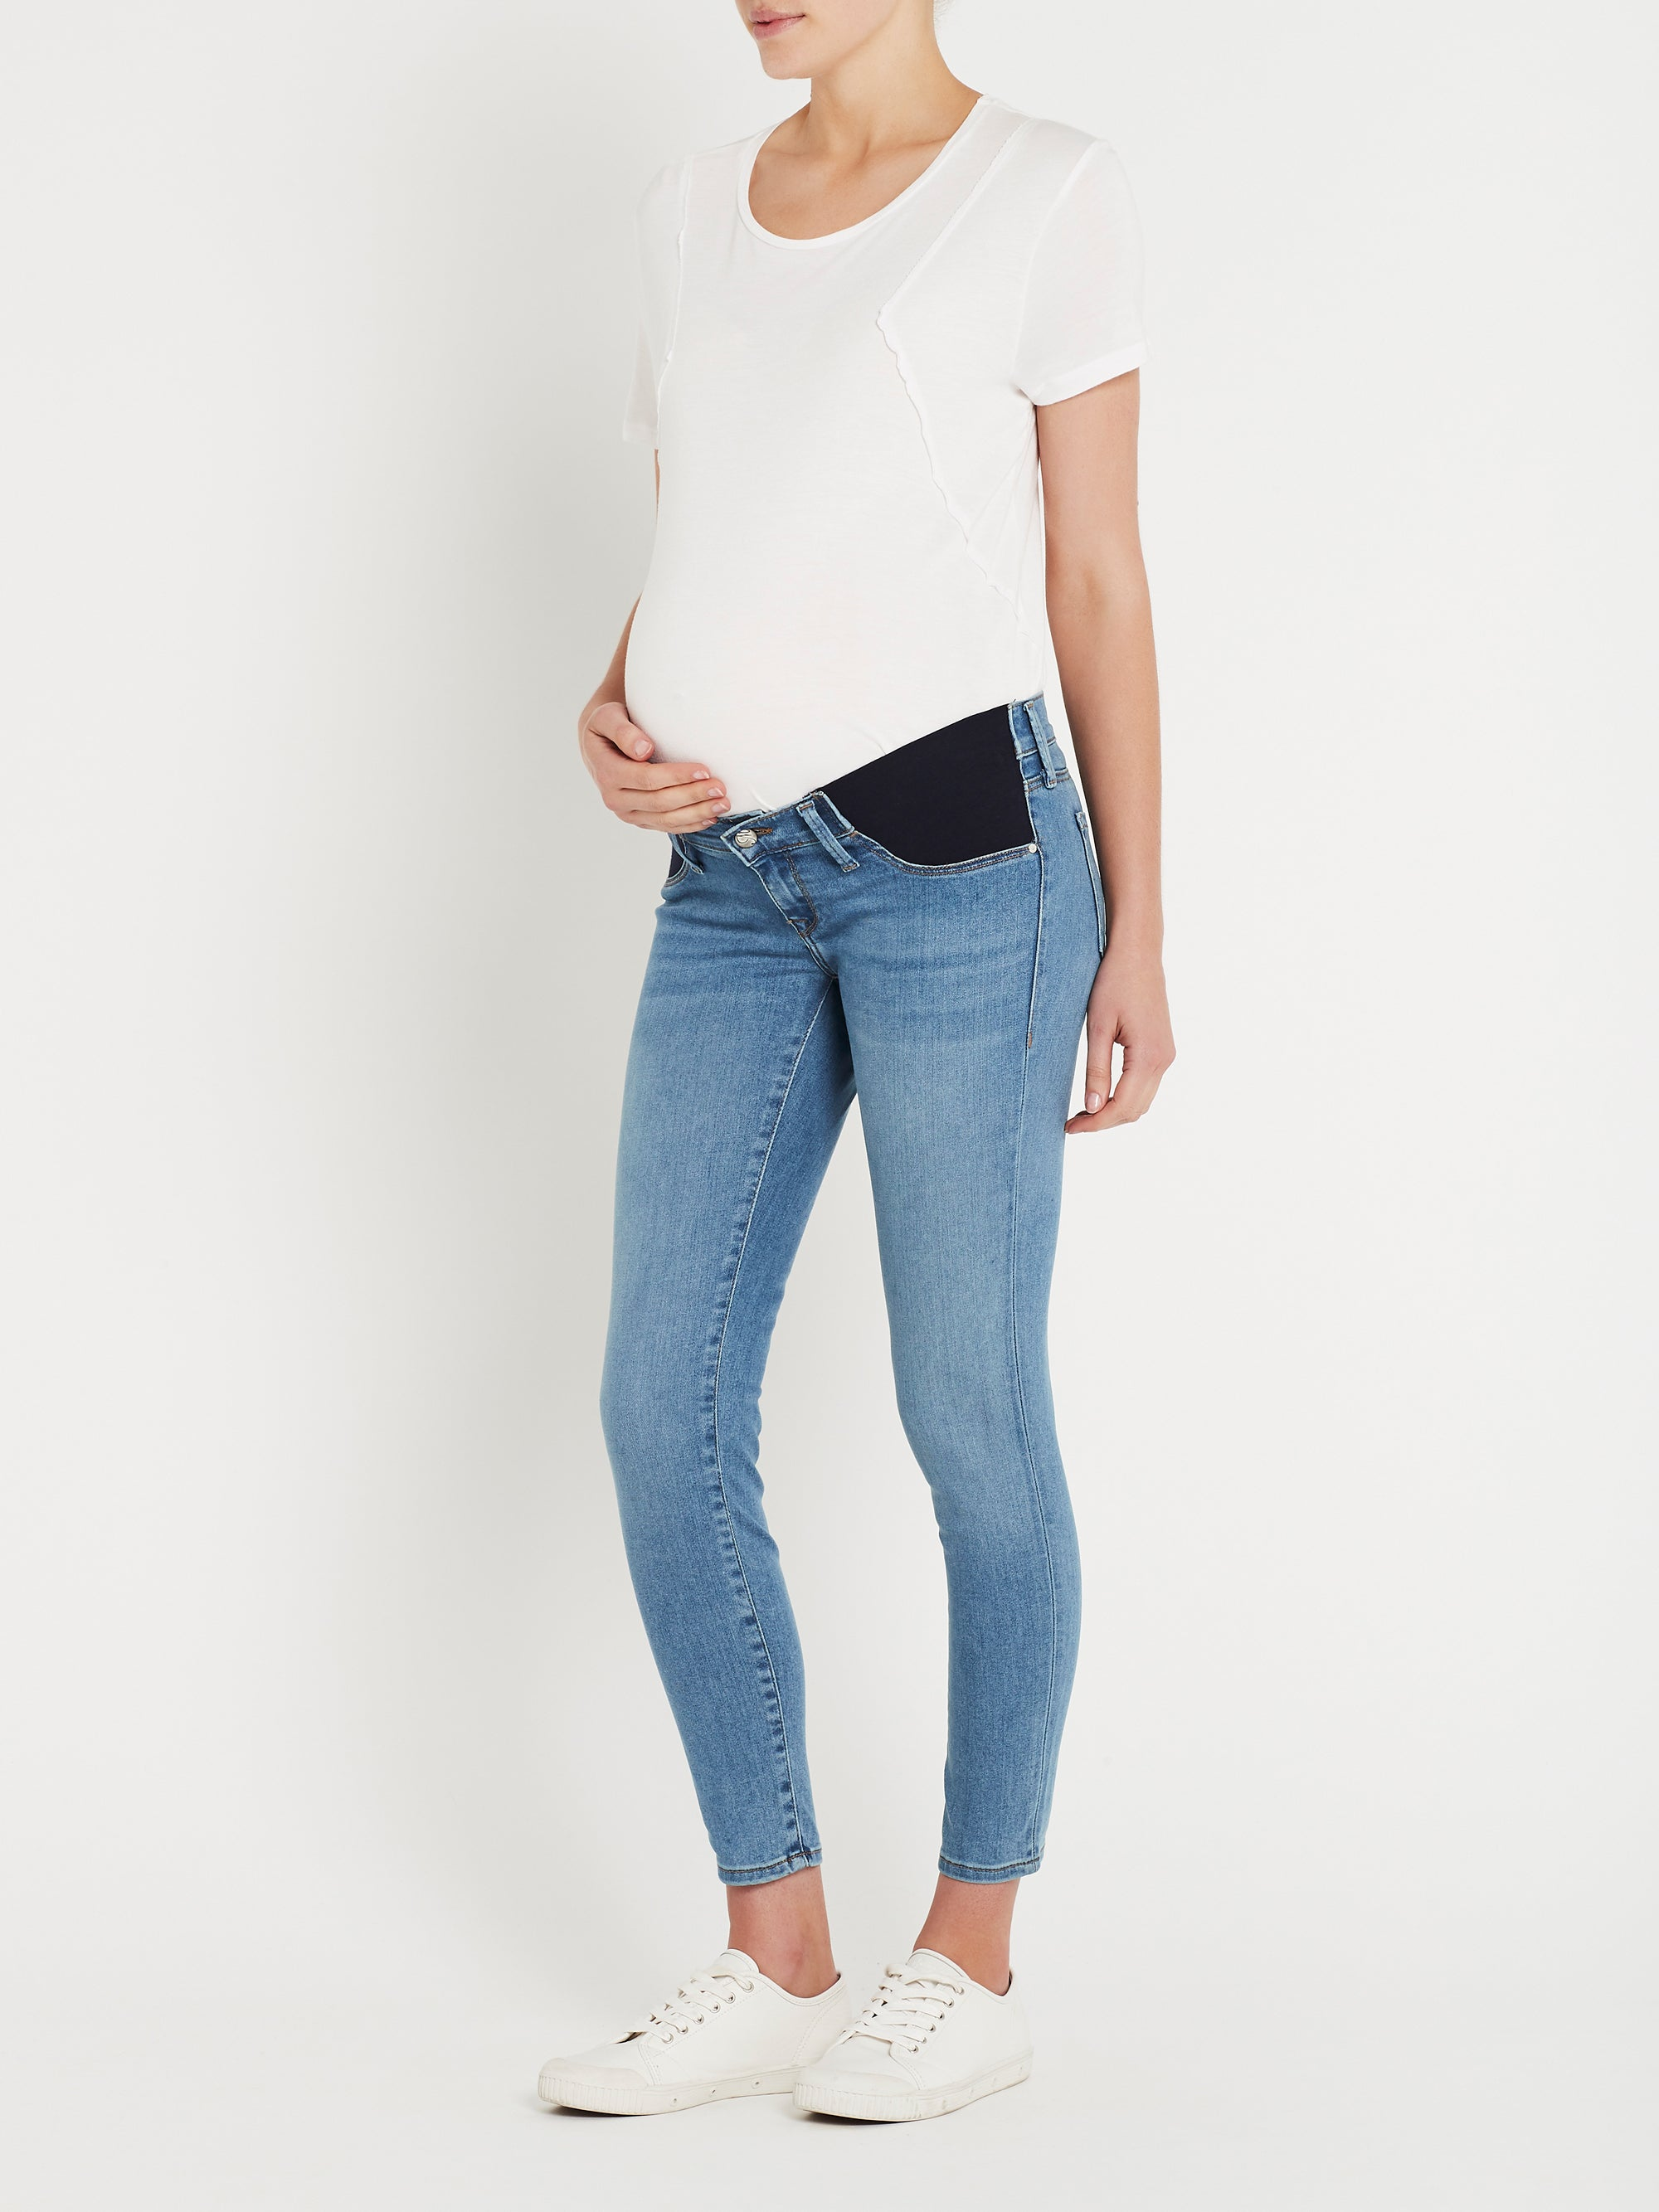 Reina Ankle Skinny Maternity Jeans in Light Brushed Super Soft